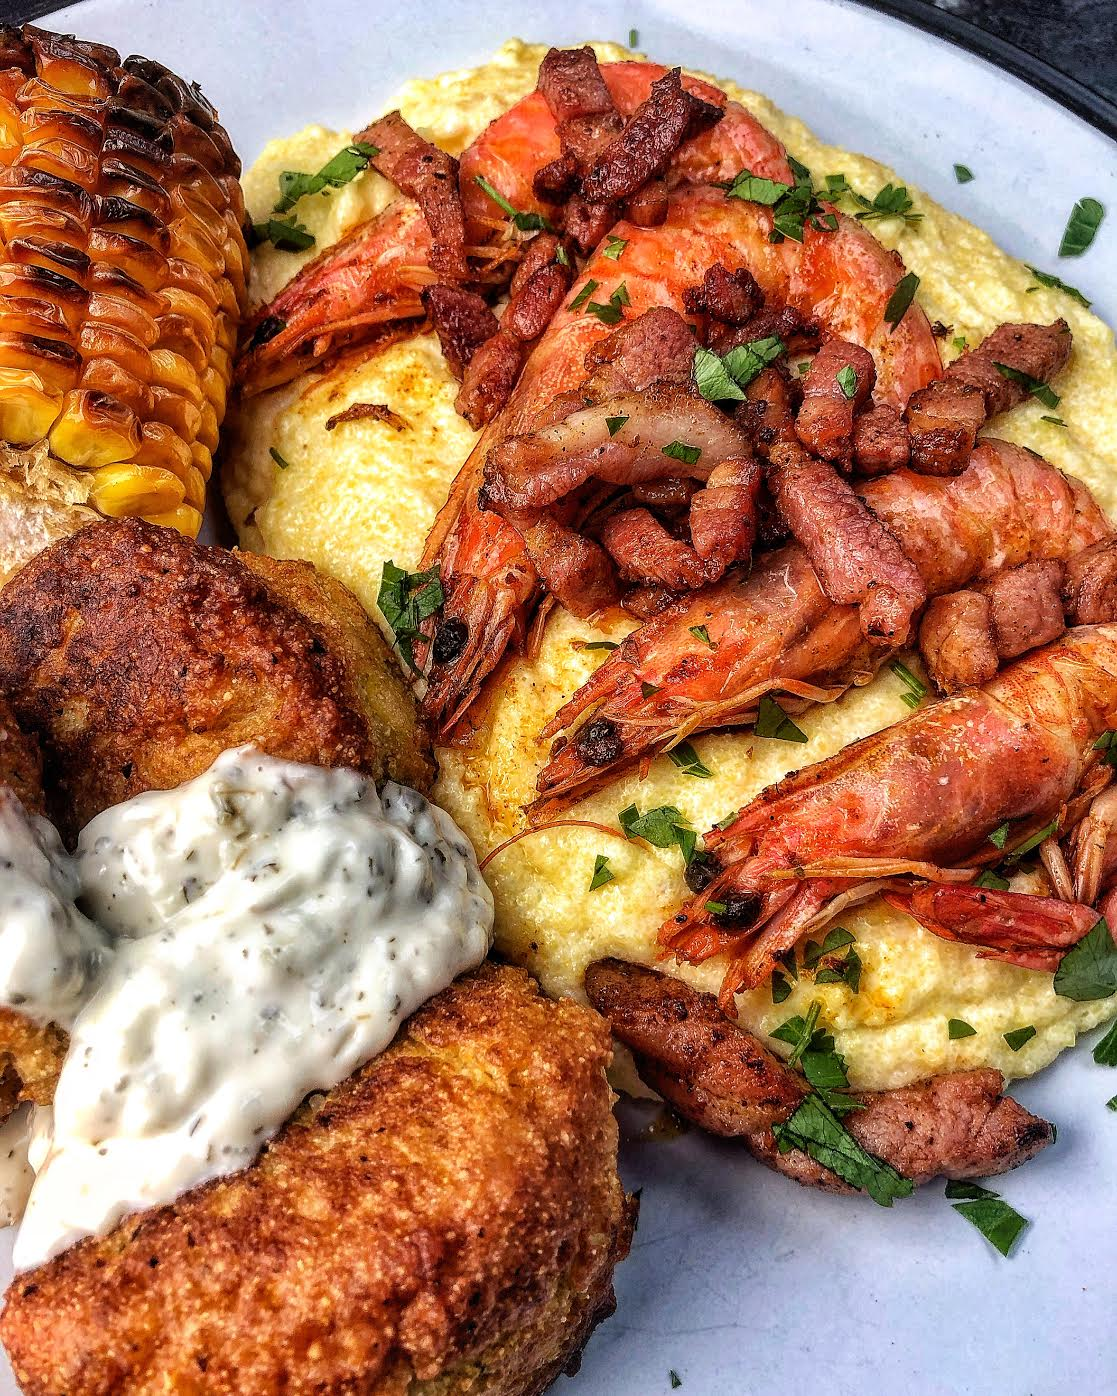 Berbere Spiced Prawns & Bacon, with Cheesy Grits, Hush Puppies and Corn